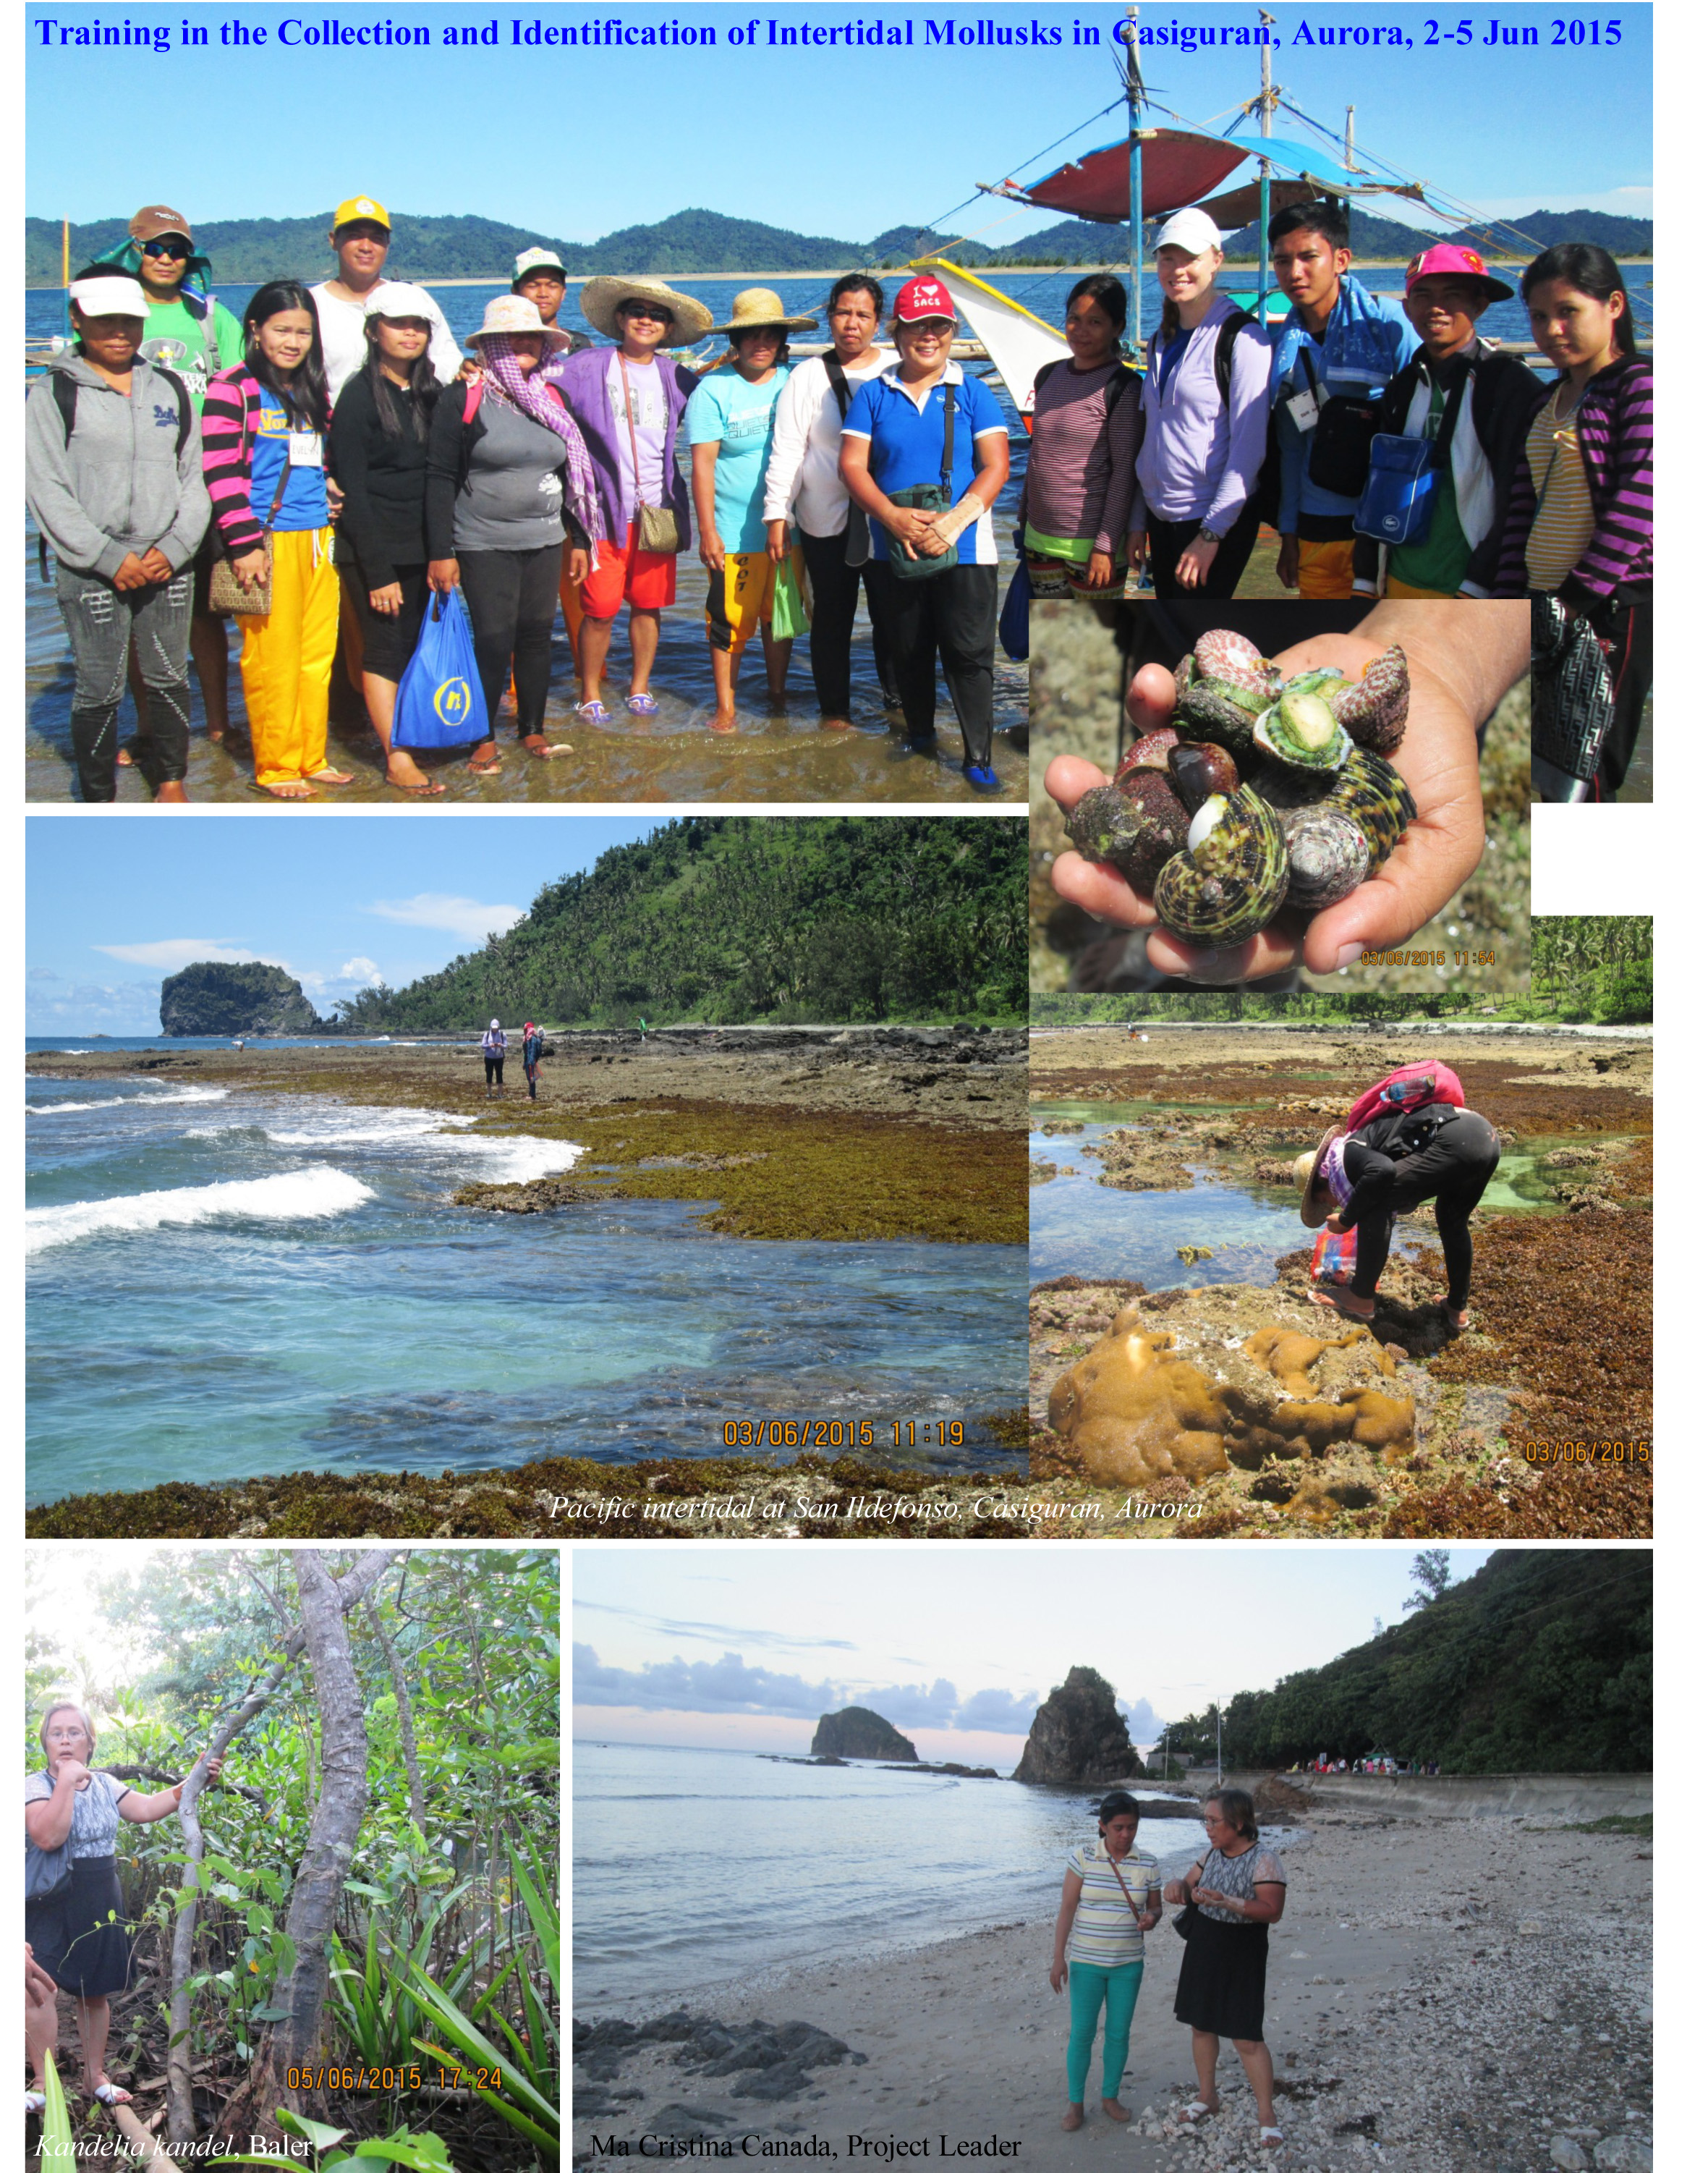 Training in Mollusk Collection and Identification, Casiguran